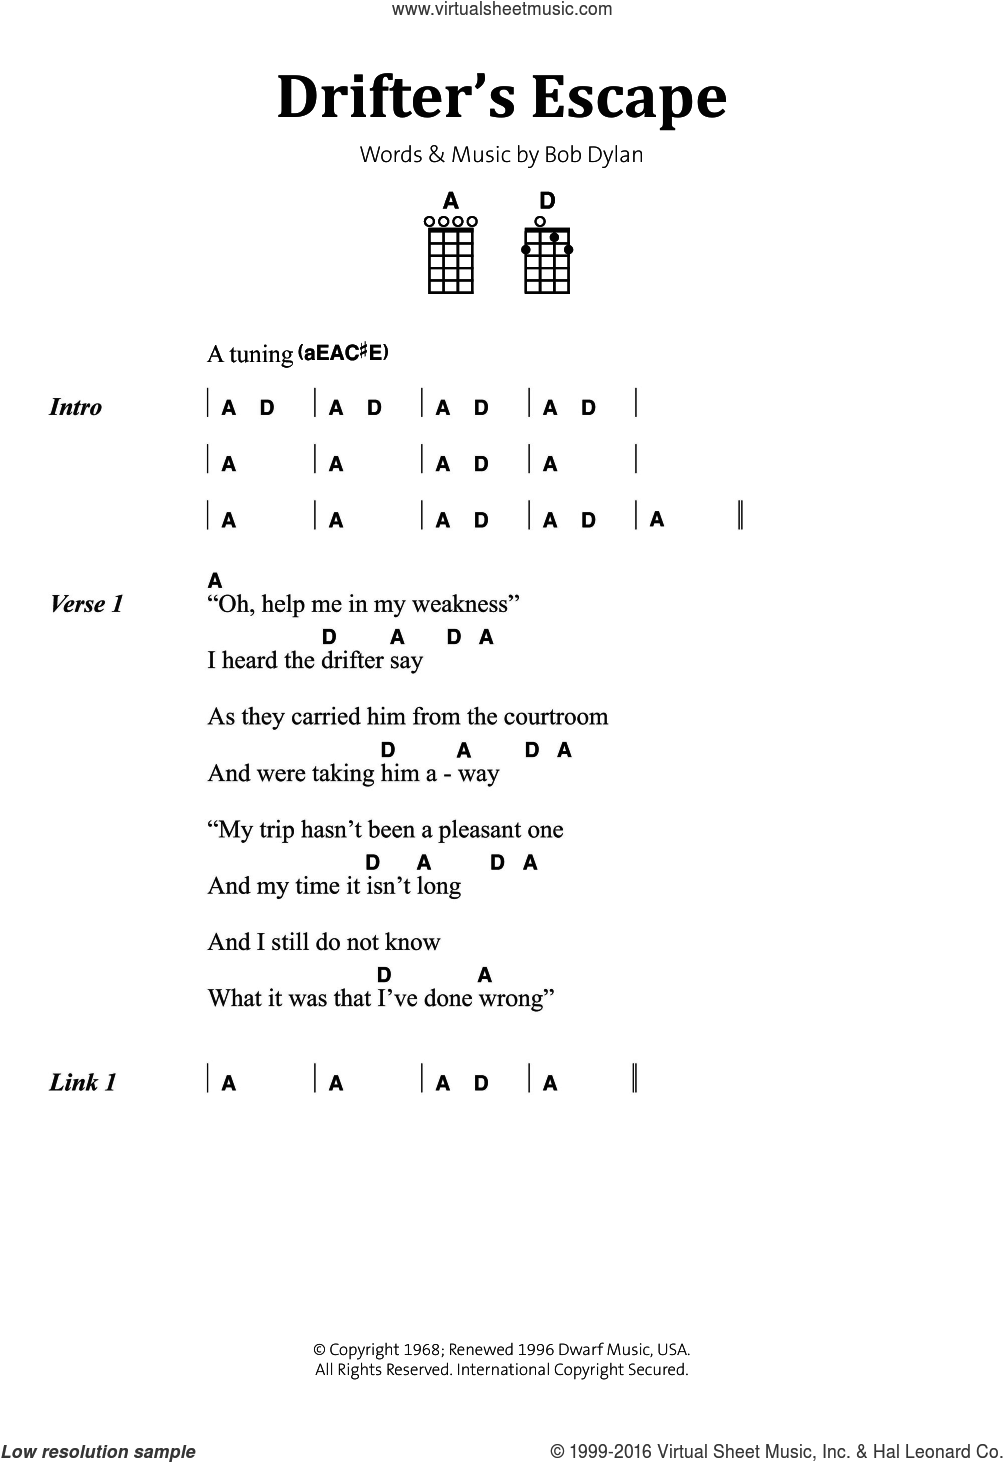 Drifter's Escape sheet music for voice, piano or guitar by Bob Dylan, intermediate skill level